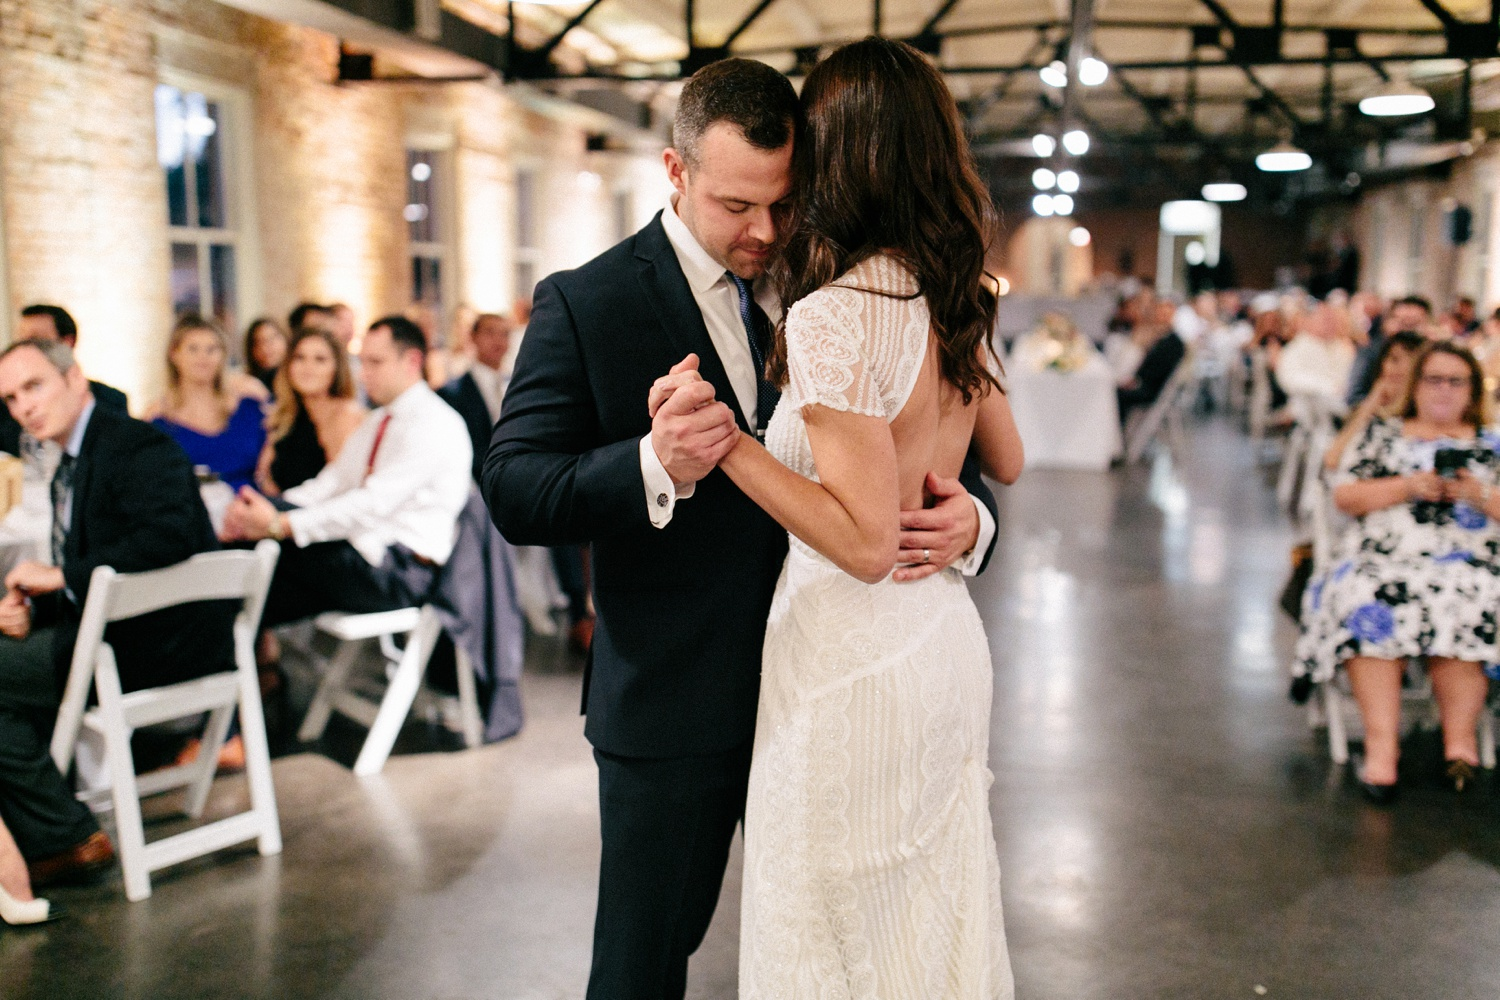 Kadee + Tyler | a raw, emotional wedding at the Filter Building on White Rock Lake in Dallas, TX by North Texas Wedding Photographer, Rachel Meagan Photography 198